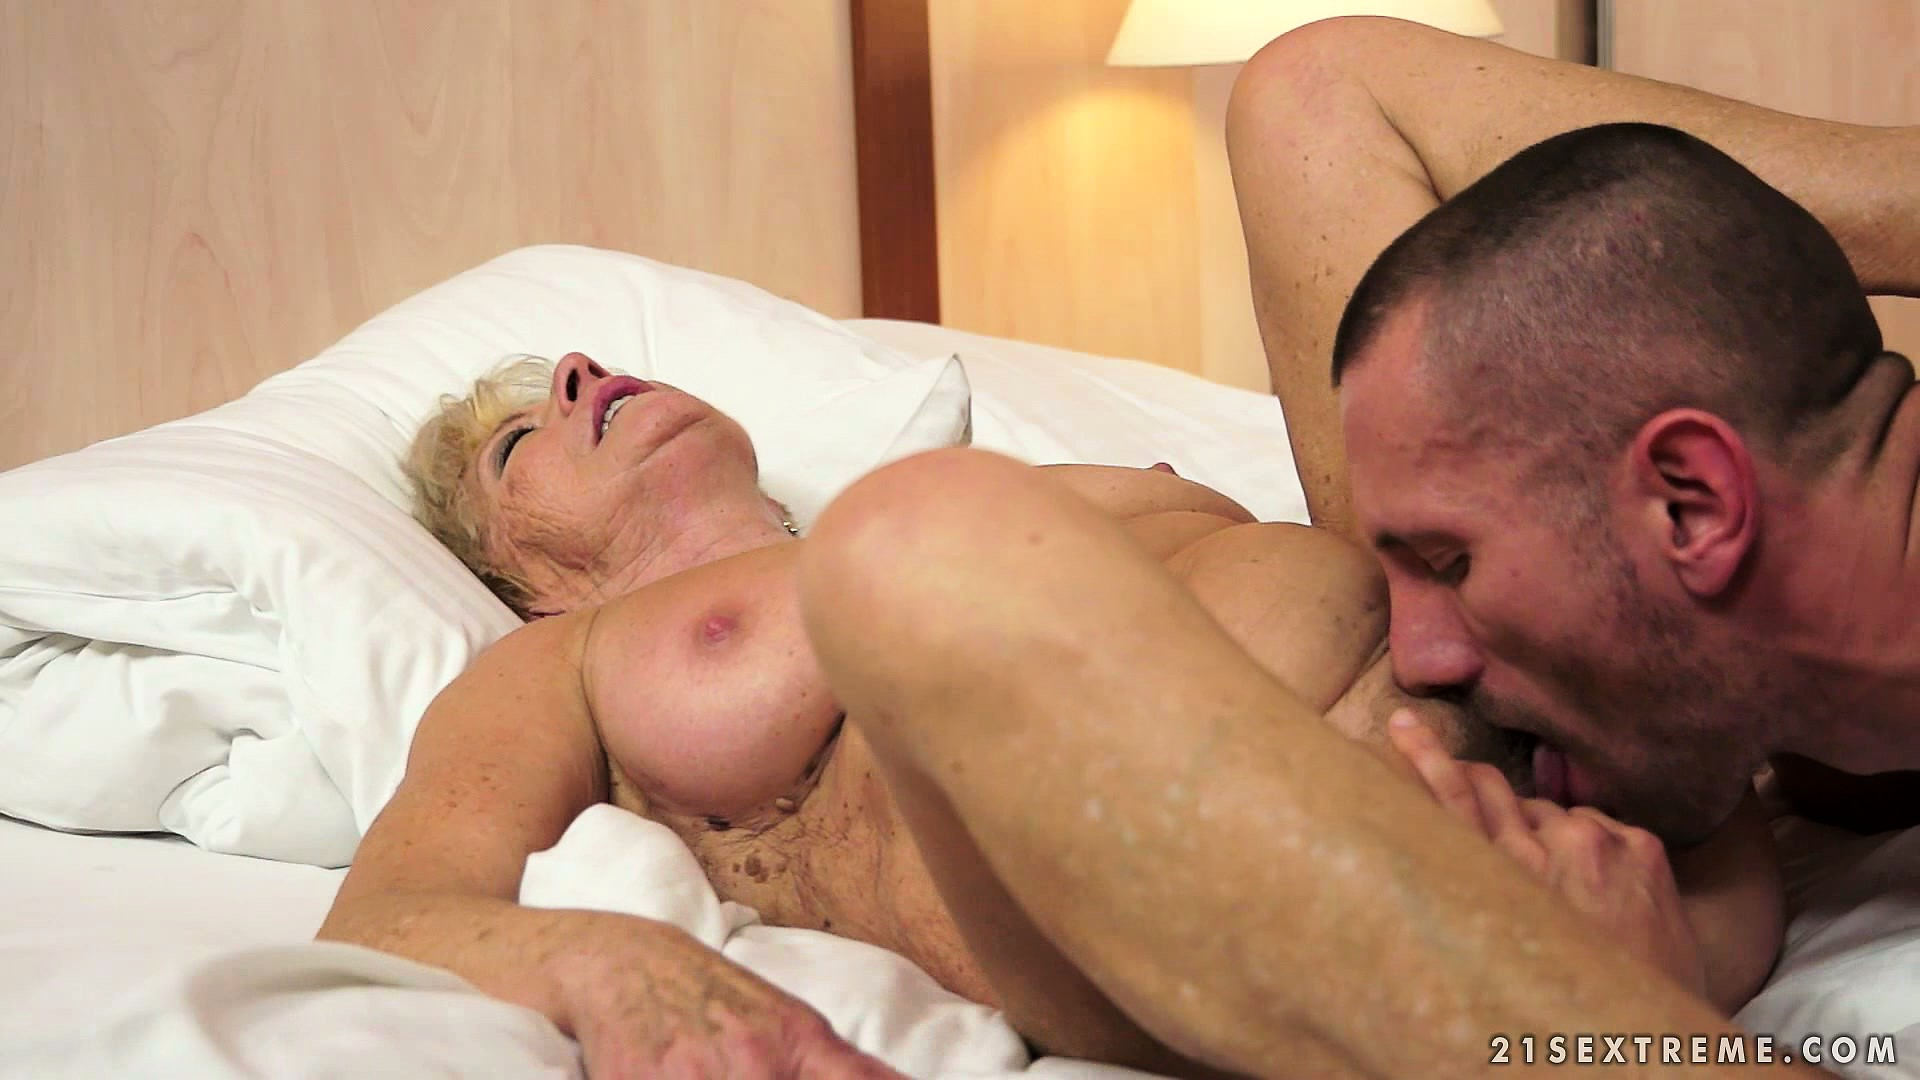 Porno Video of Young Cock Pushed Into This Granny's Cunt Will Make Her Yell